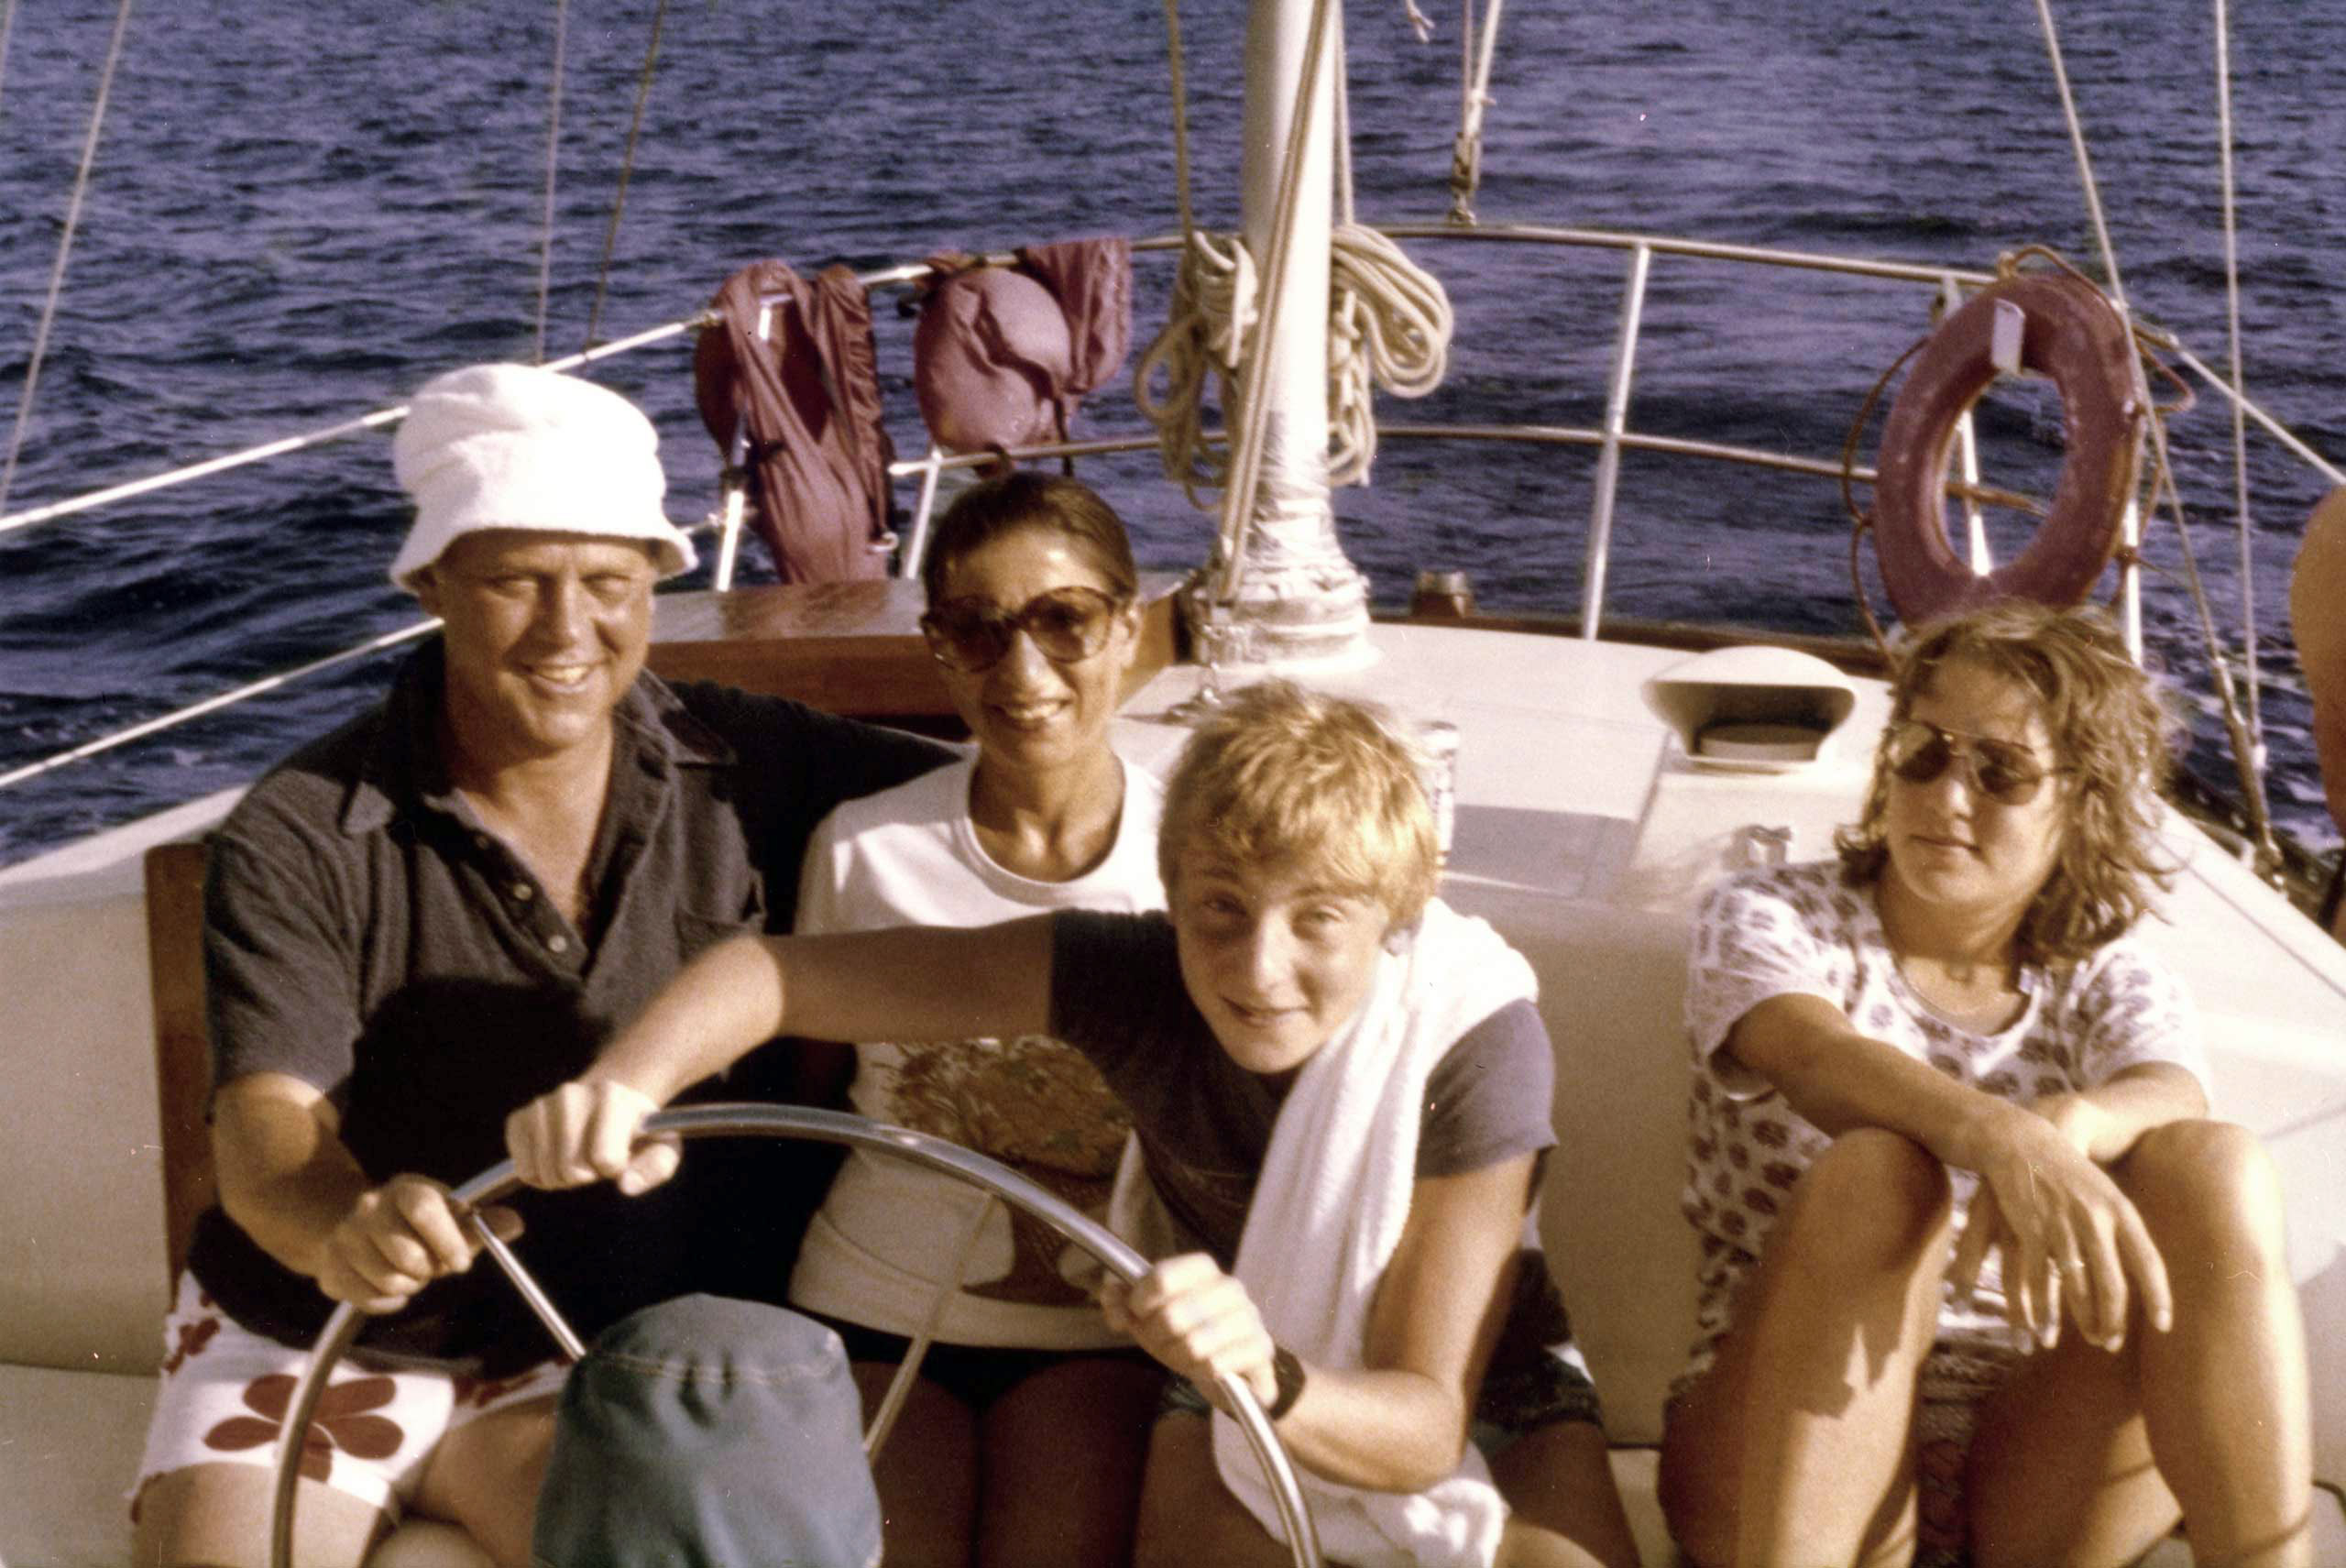 Ruth Bader Ginsburg, her husband, Martin, and their children, James and Jane, in a boat off the shore of St. Thomas in the Virgin Islands, December 1980.